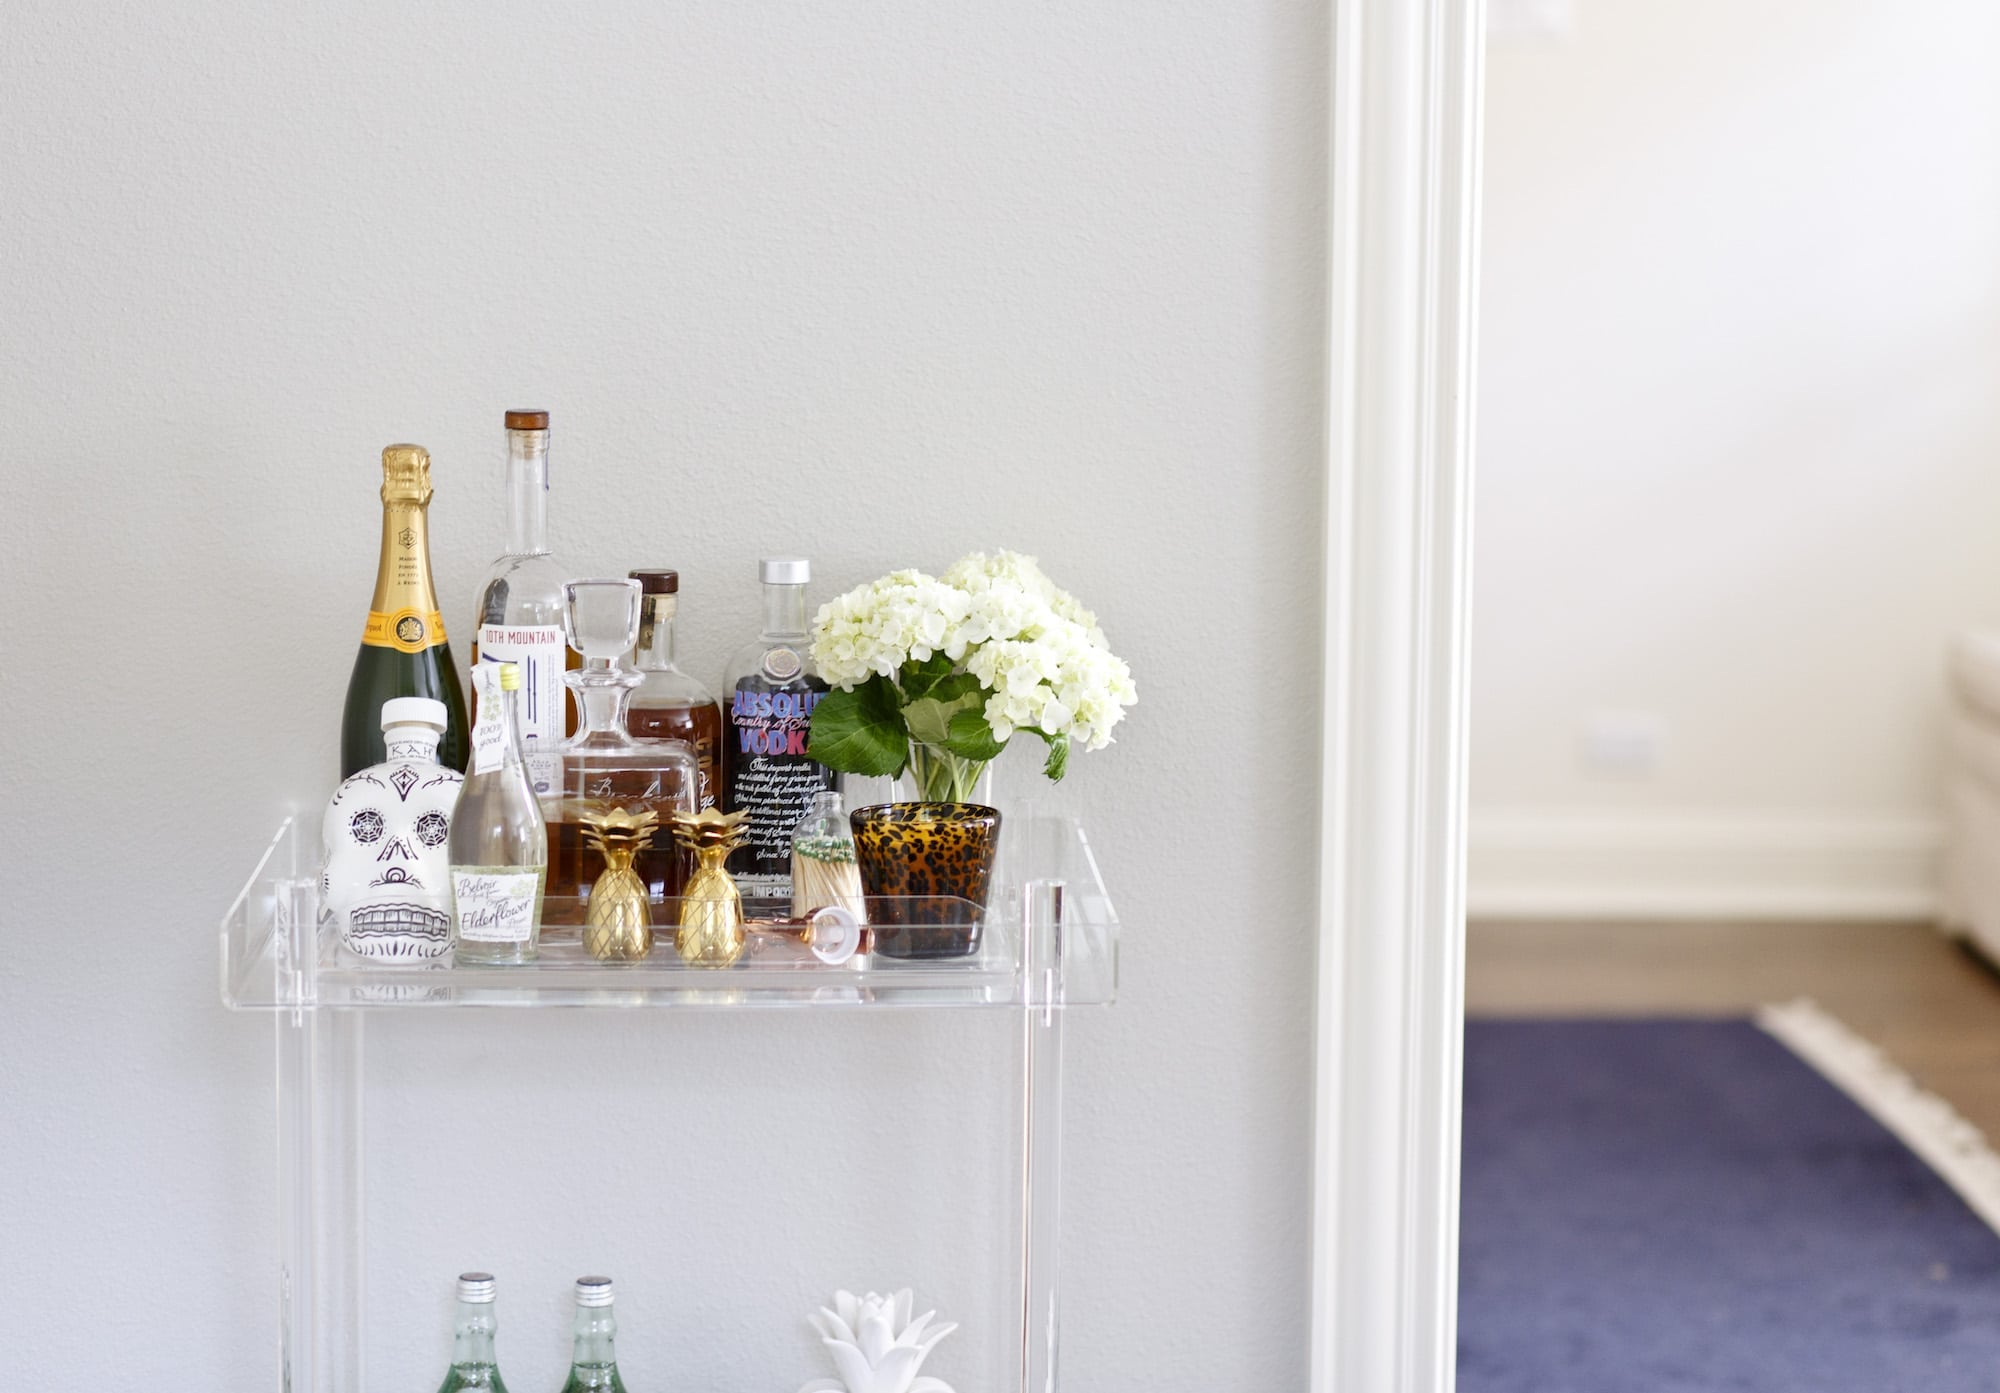 What to put on a barcart